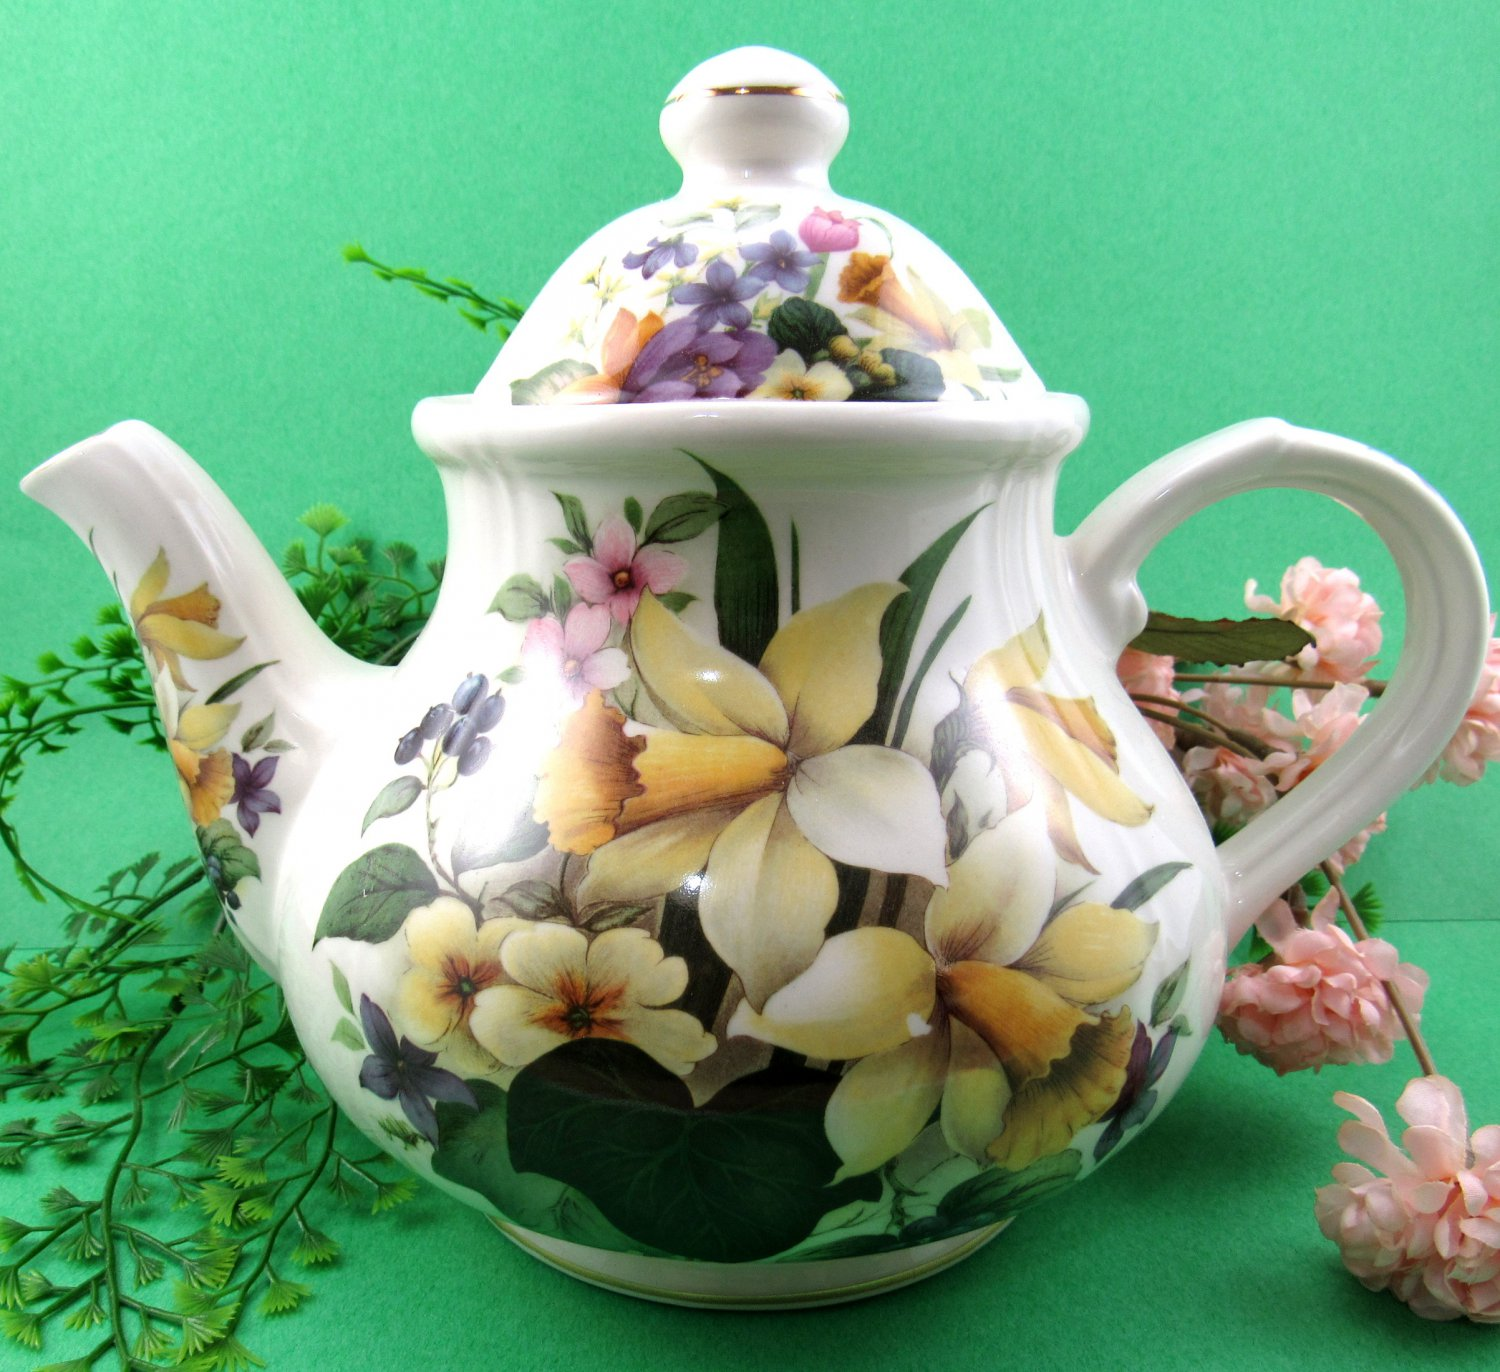 Sadler Teapot Churchill England 9 1/2 Inches Daffodils and Spring Flowers Gold Trim Large